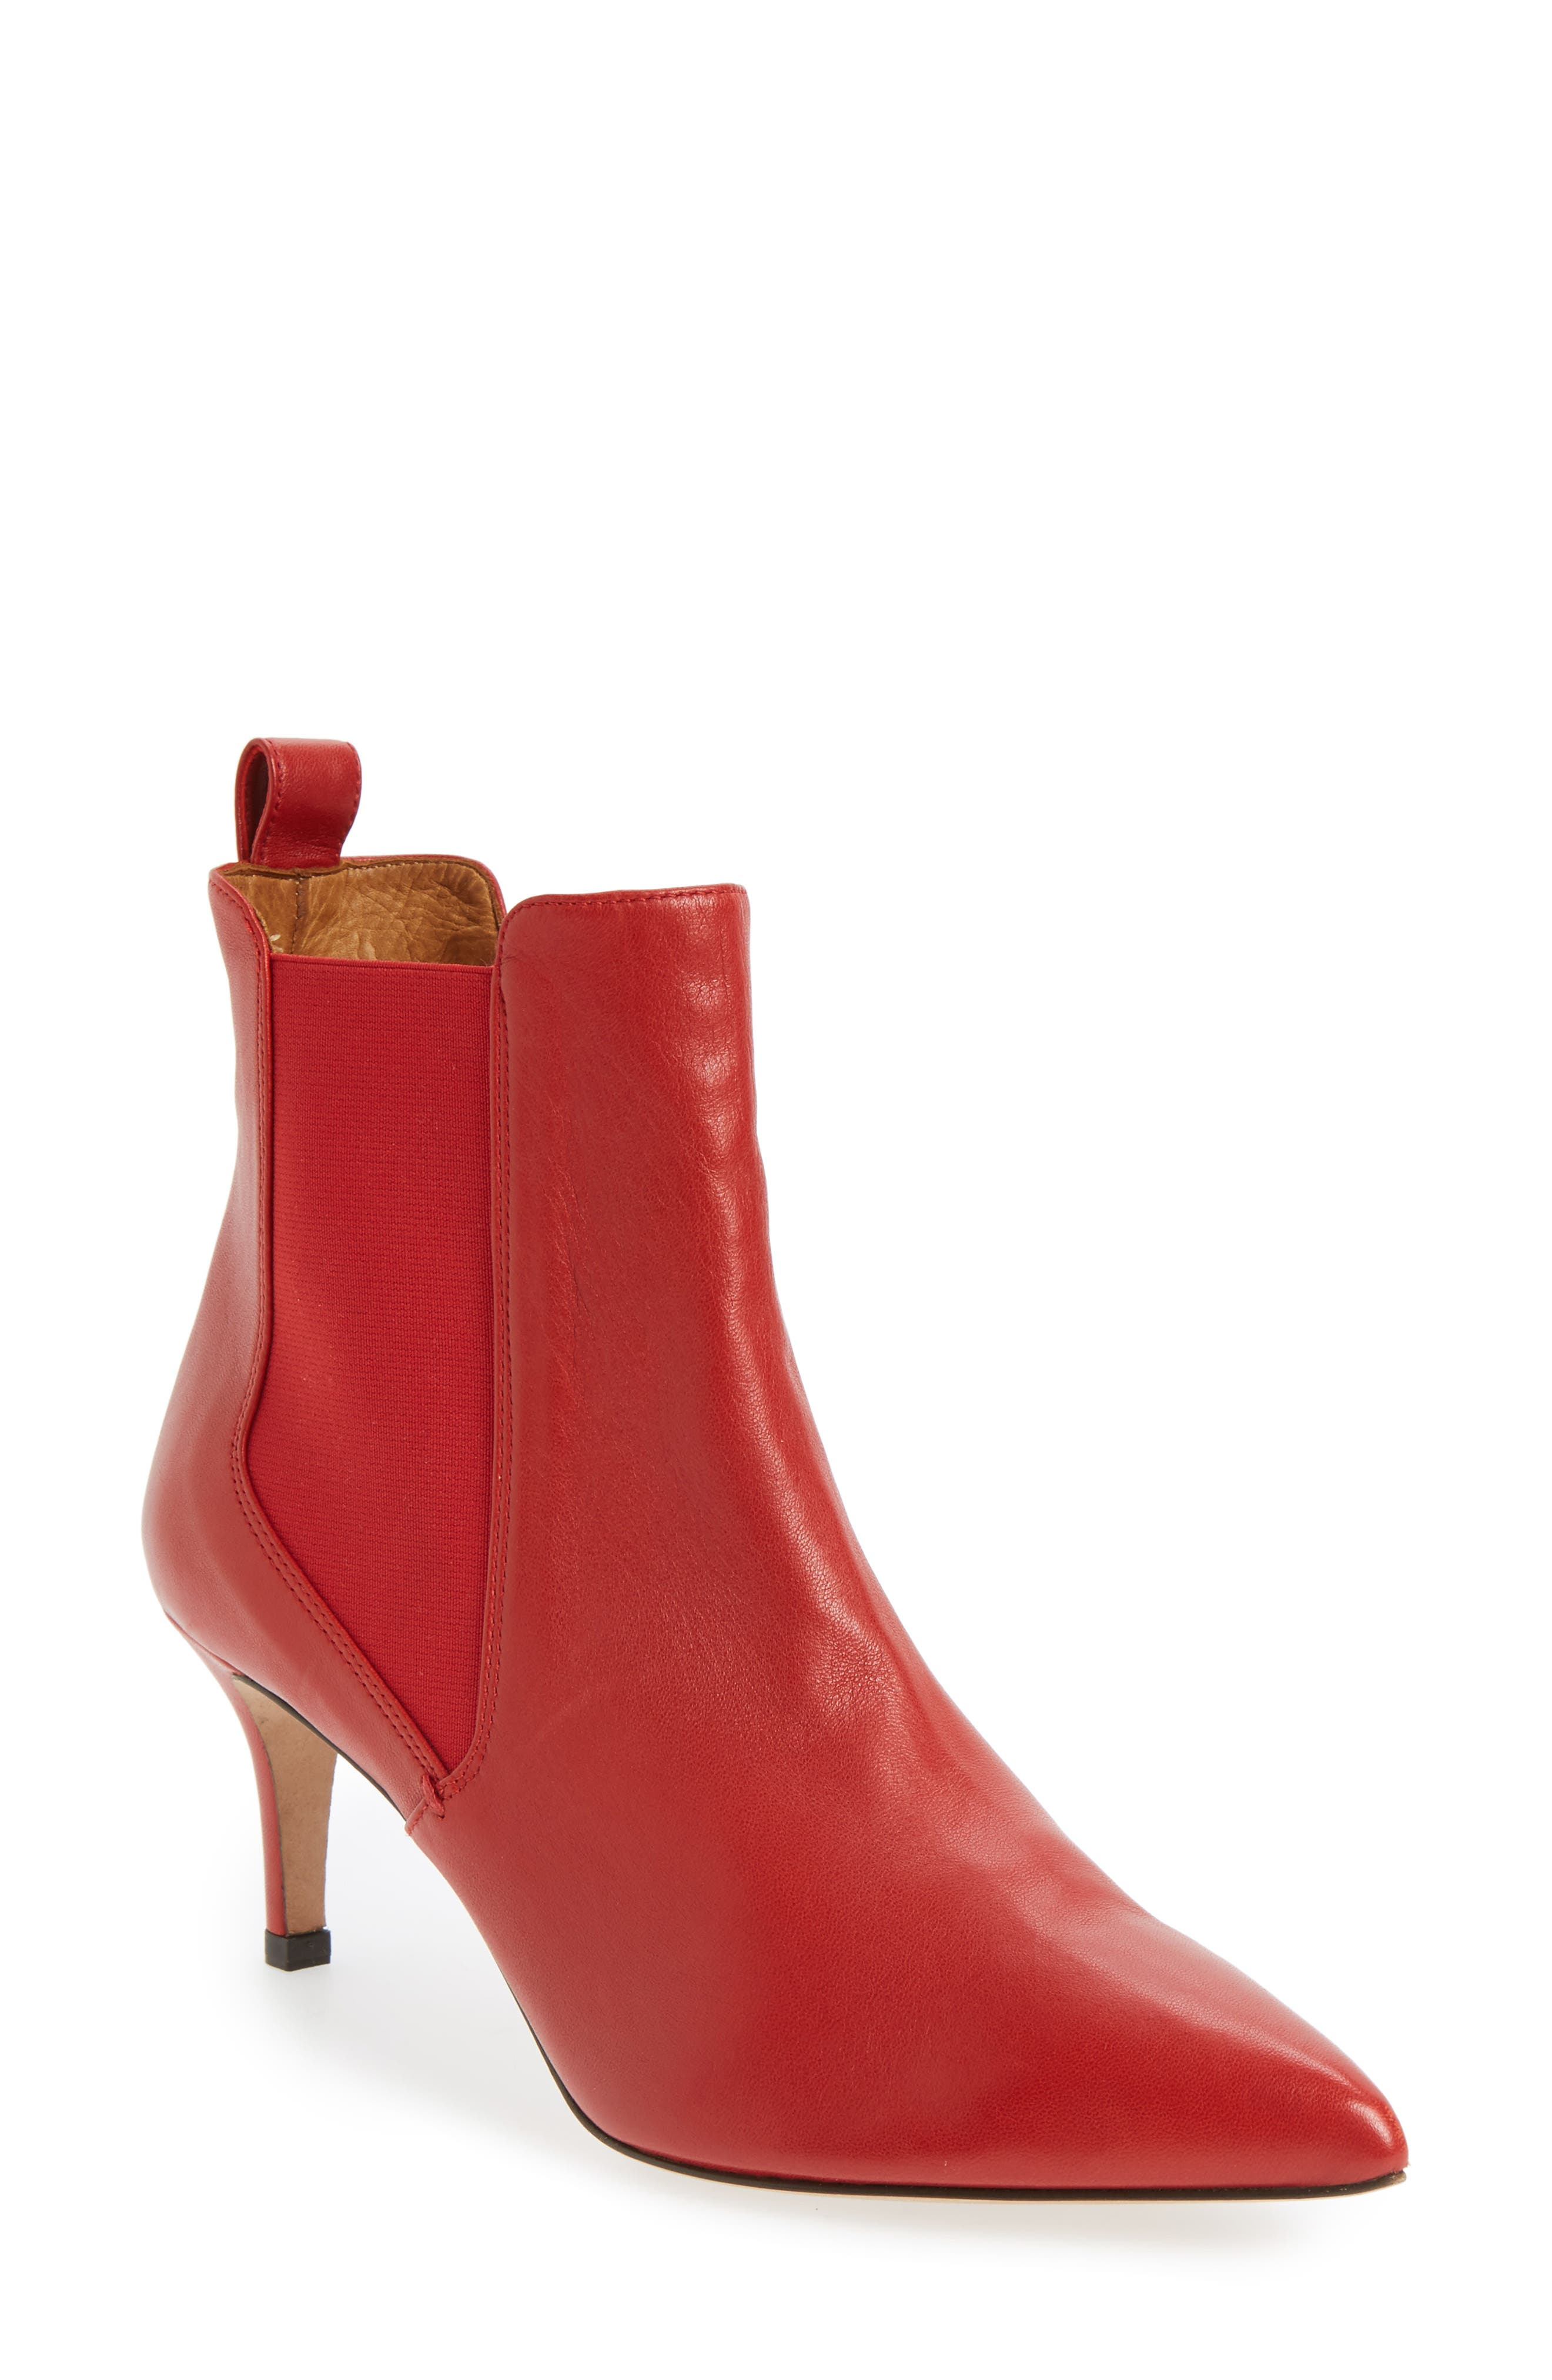 Main Image - Veronica Beard Parker Pointy Toe Chelsea Bootie (Women)